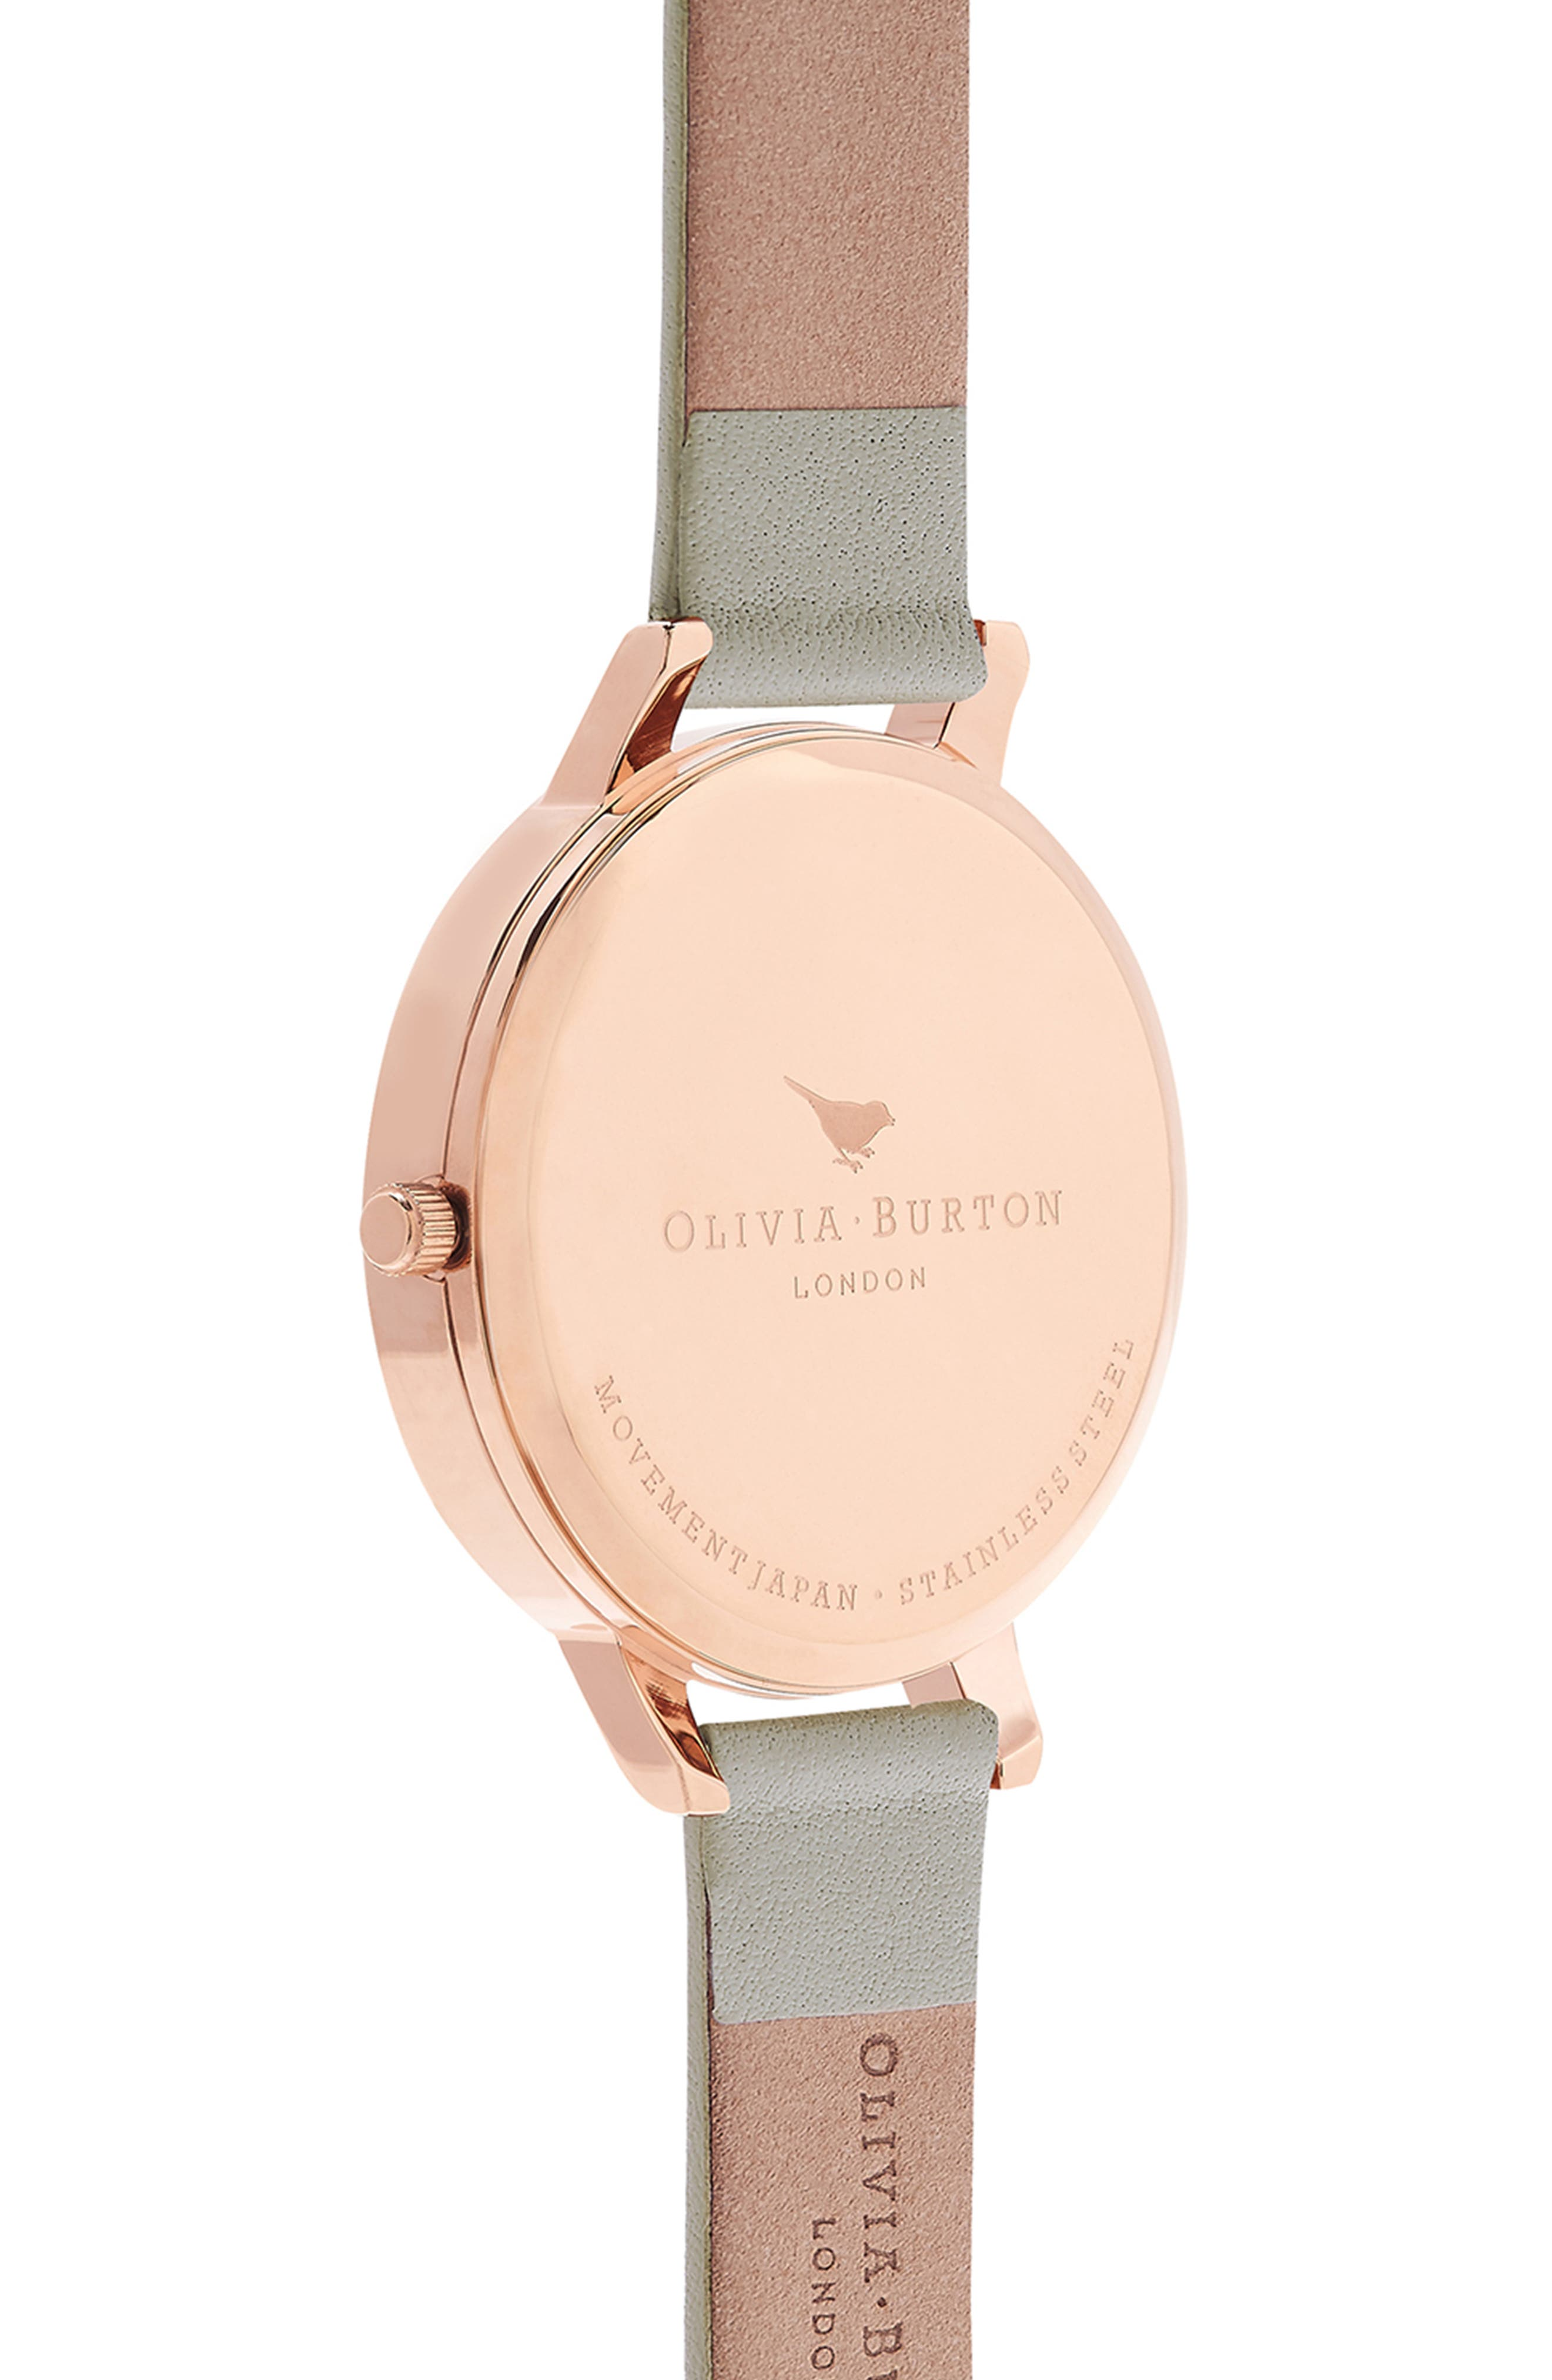 OLIVIA BURTON, Big Dial Leather Strap Watch, 38mm, Alternate thumbnail 3, color, GREY/ WHITE